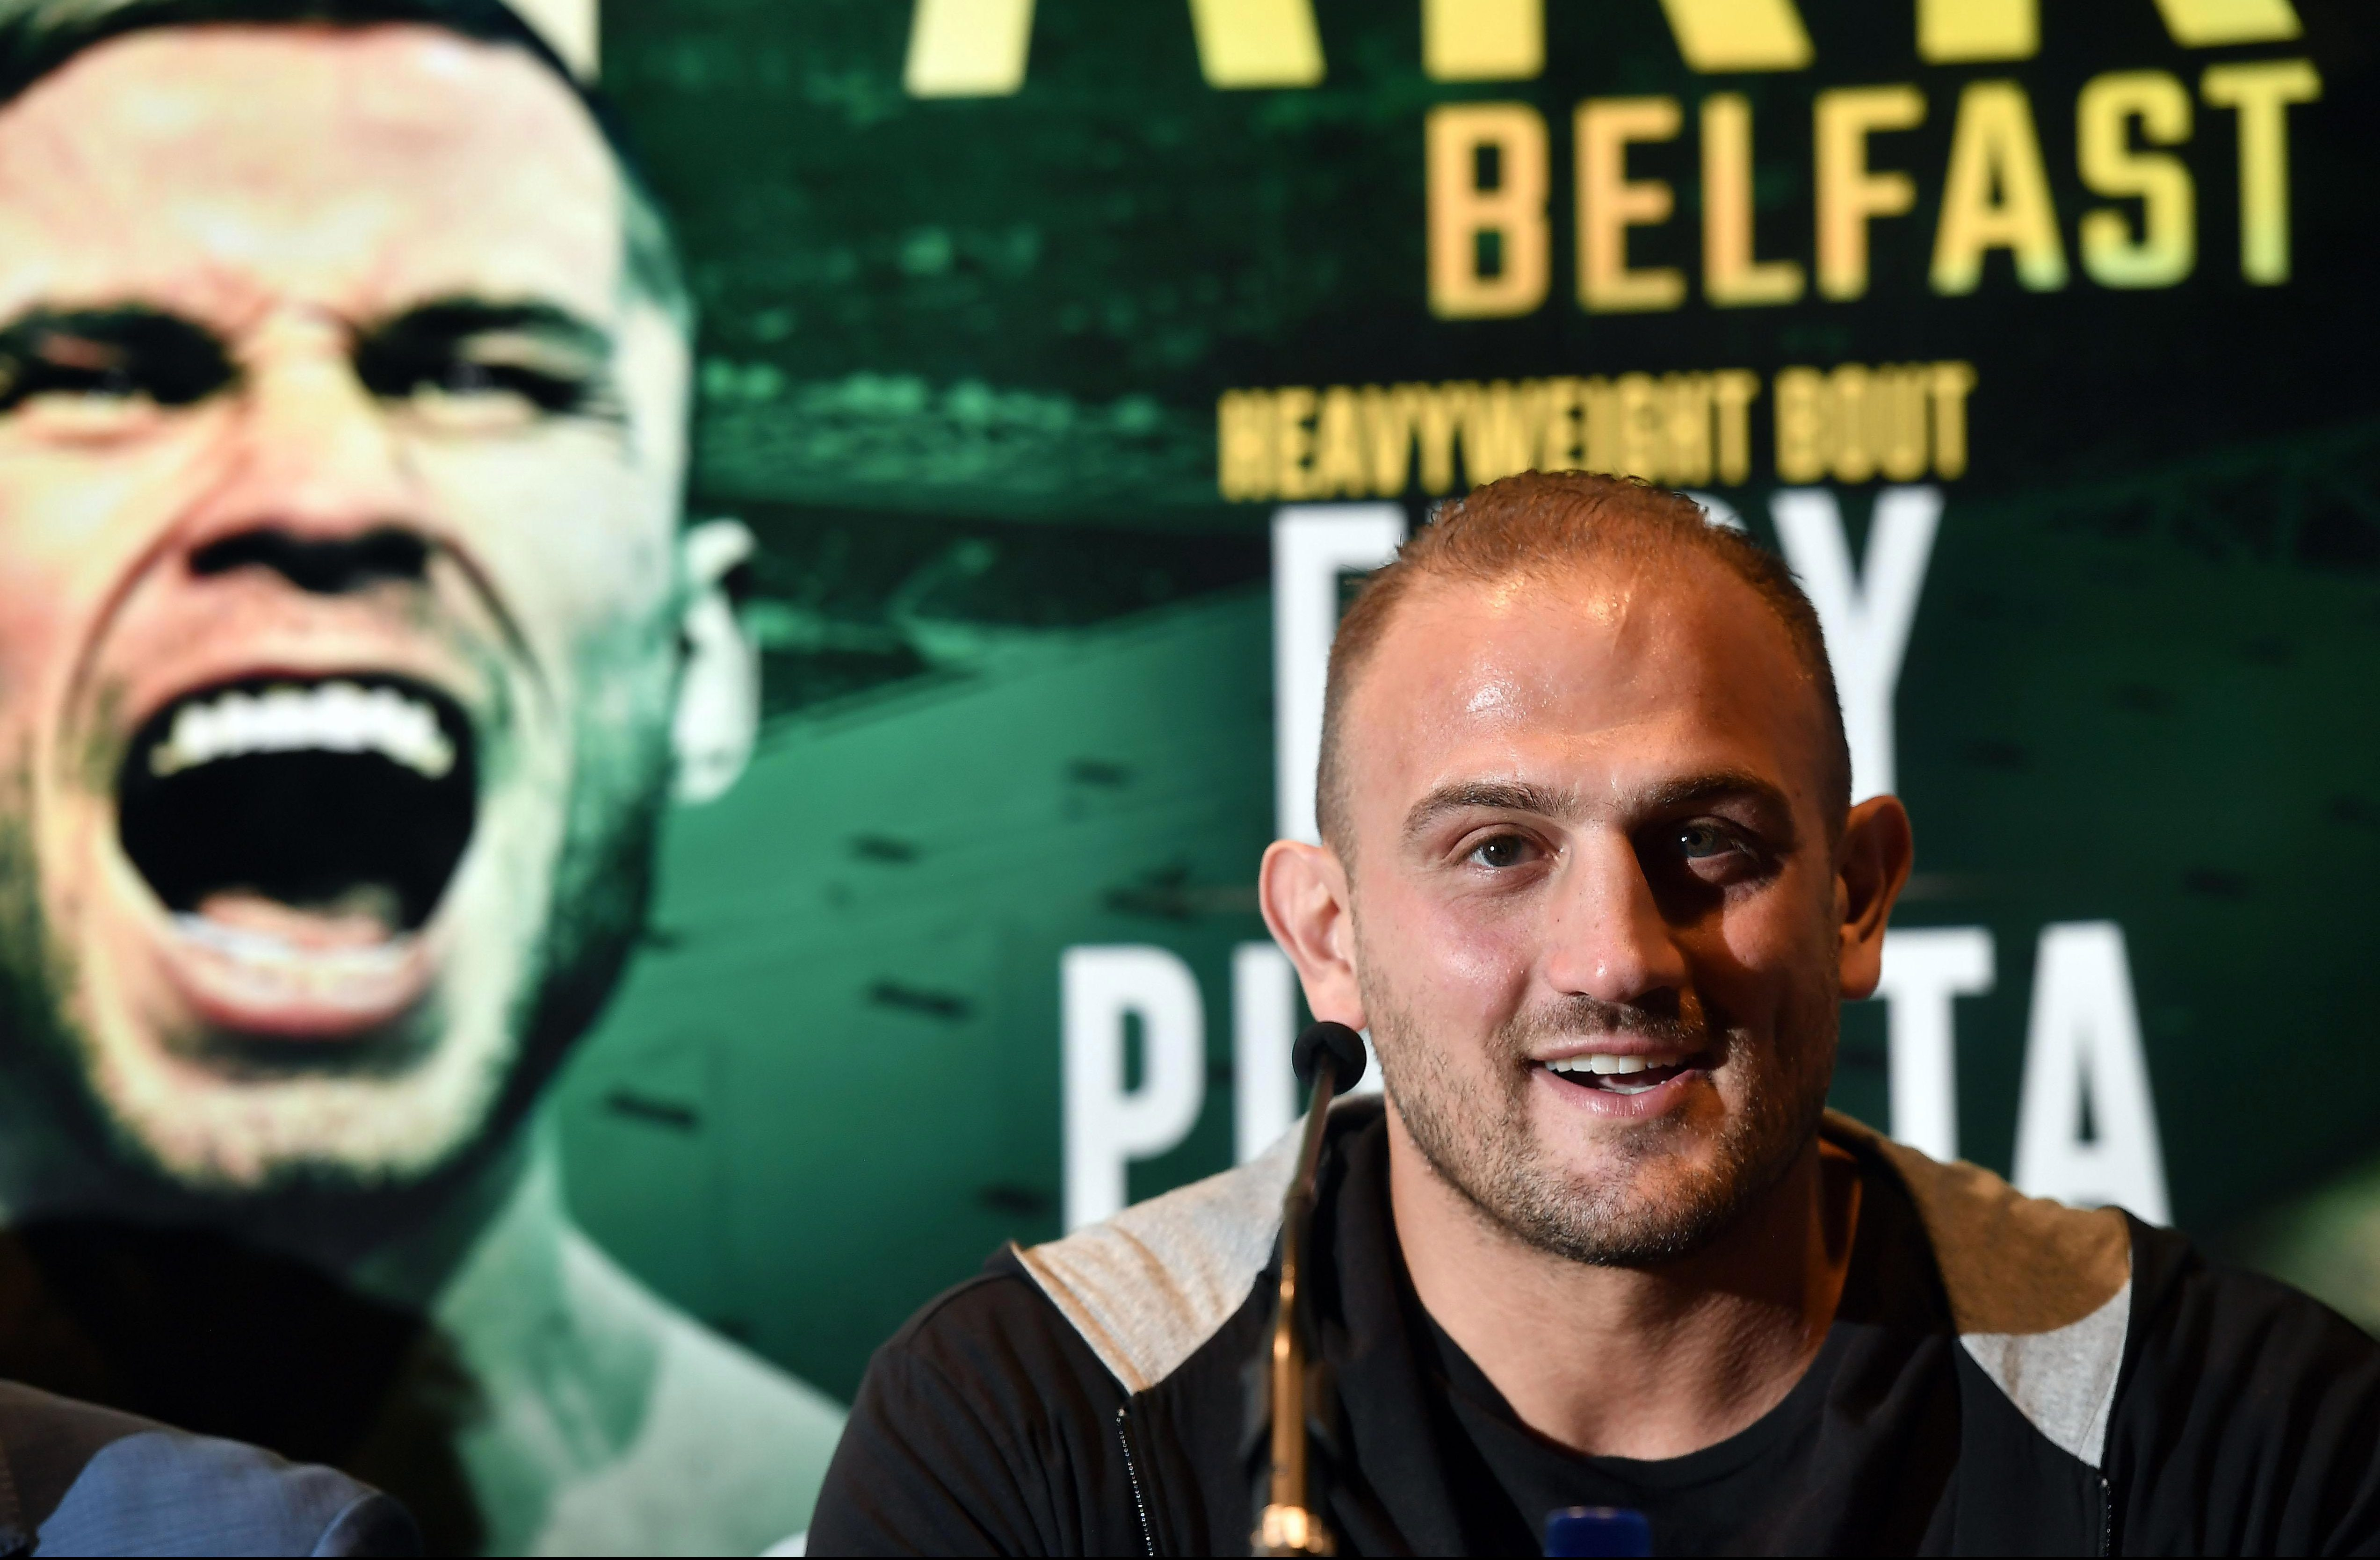 Italian Francesco Pianeta could get the fight with Deontay Wilder that Tyson Fury craves - if he topples the Gypsy King